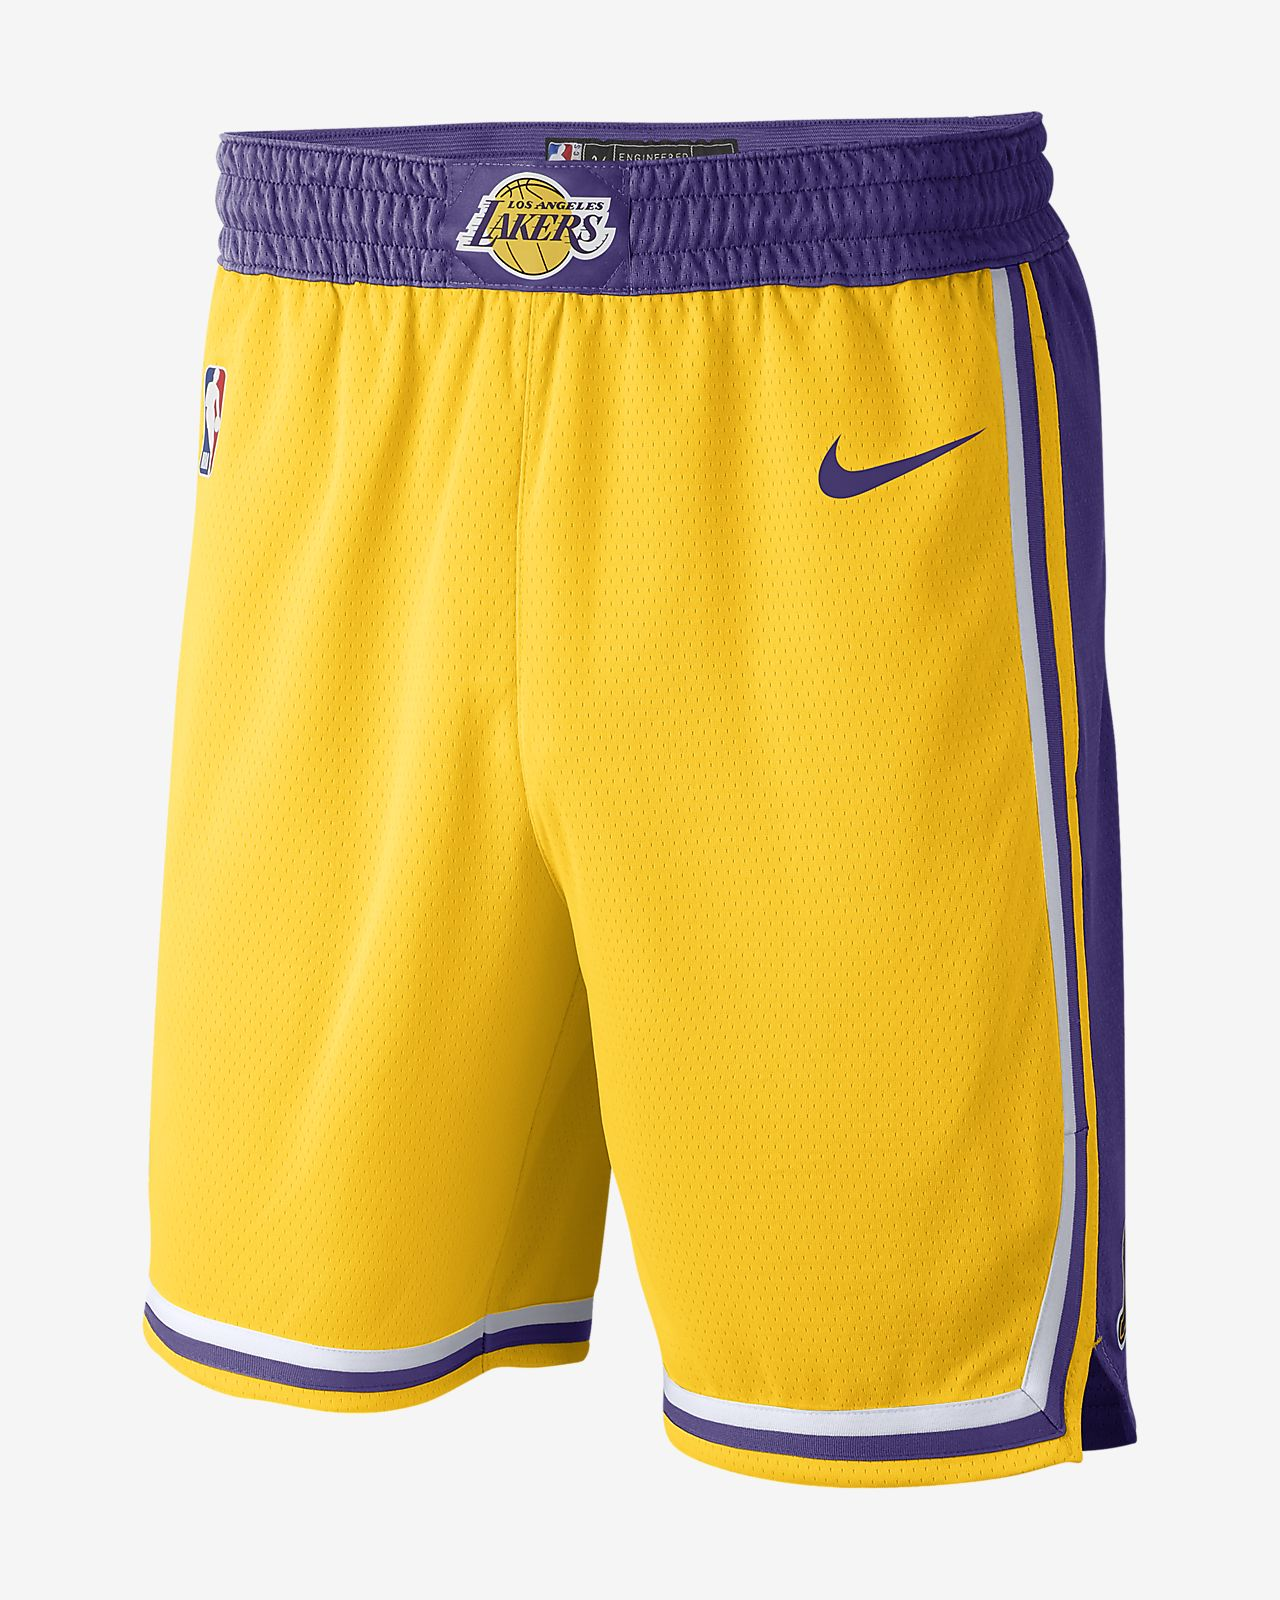 9f571ef7f2bc Los Angeles Lakers Icon Edition Swingman Men s Nike NBA Shorts. Nike ...